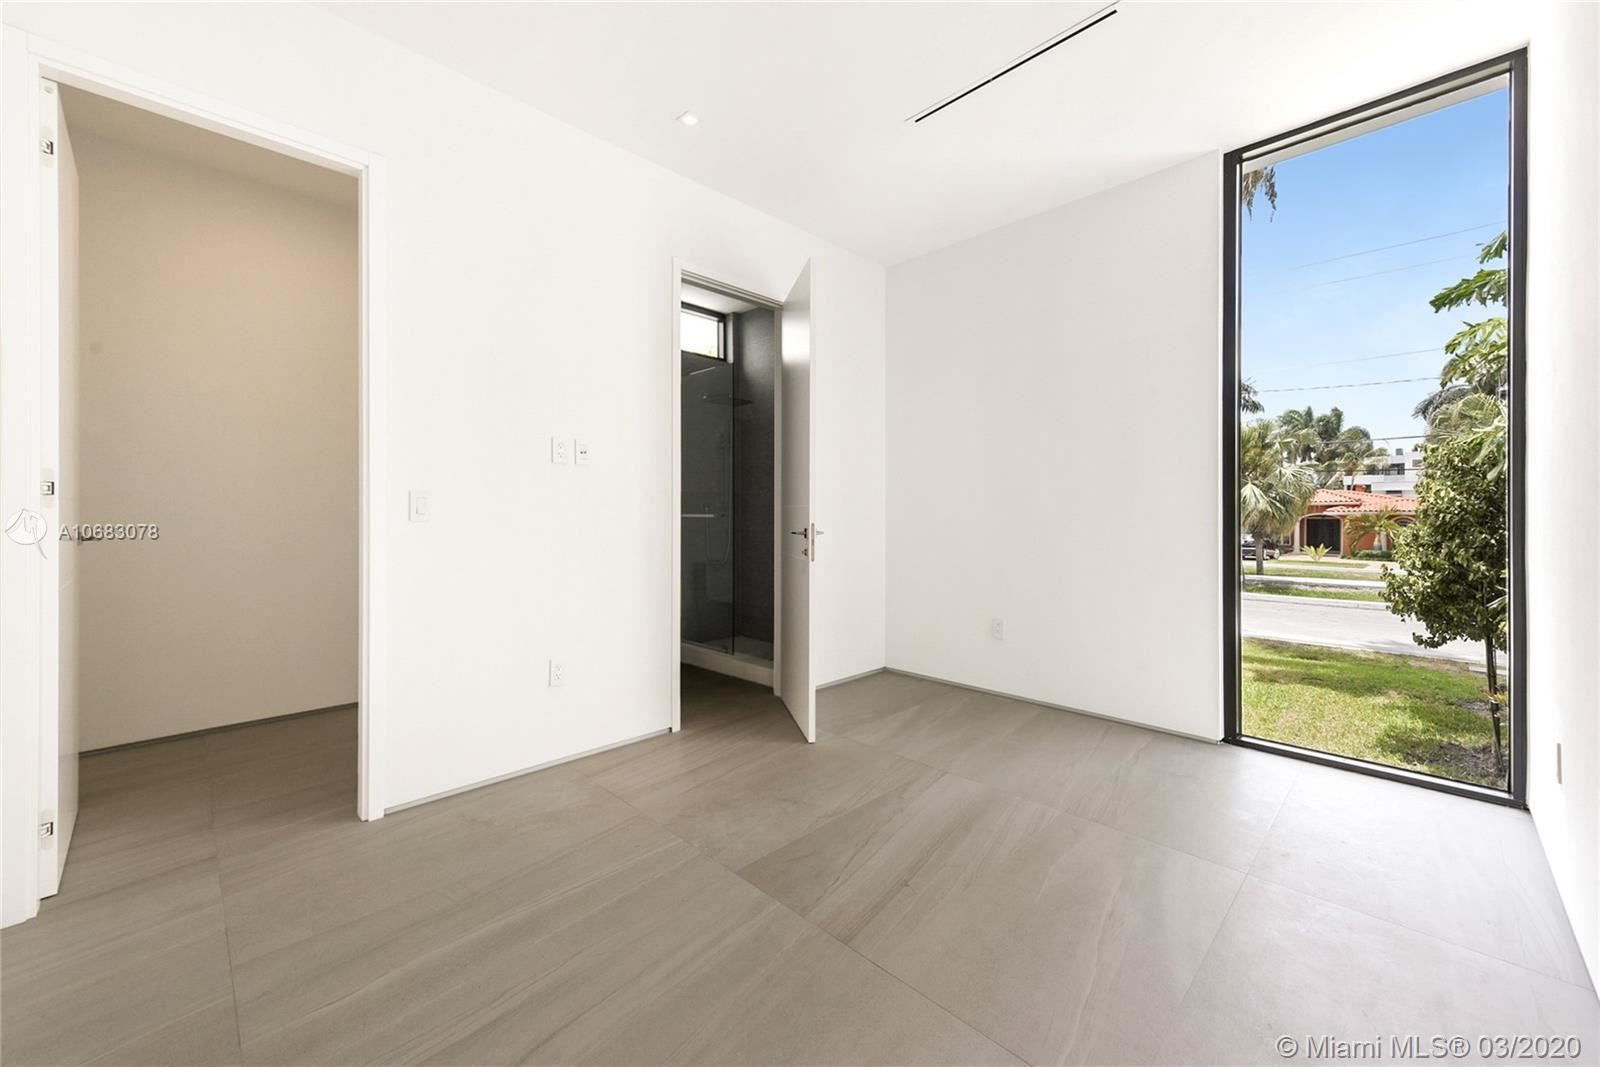 Photo 25 of Listing MLS a10683078 in 272 Palm Ave Miami Beach FL 33139